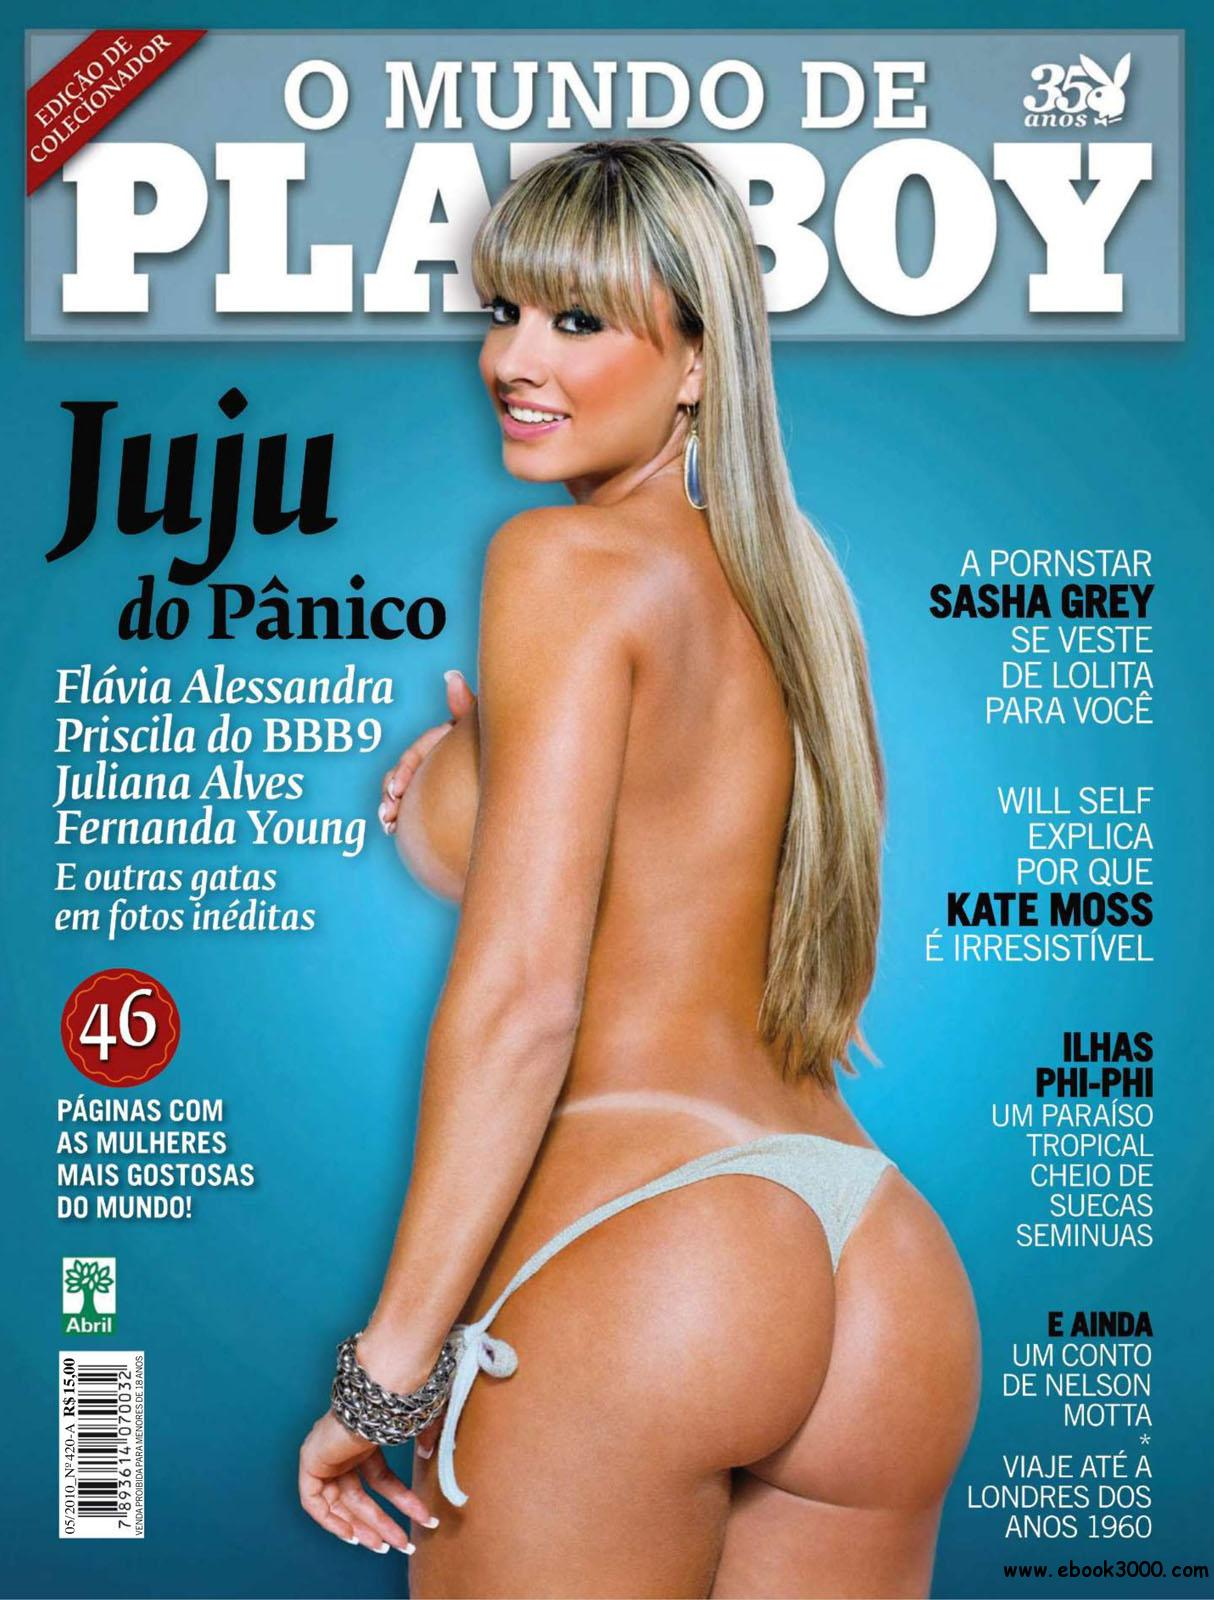 Playboy Brazil - Mundo de Playboy Special - 2010 free download